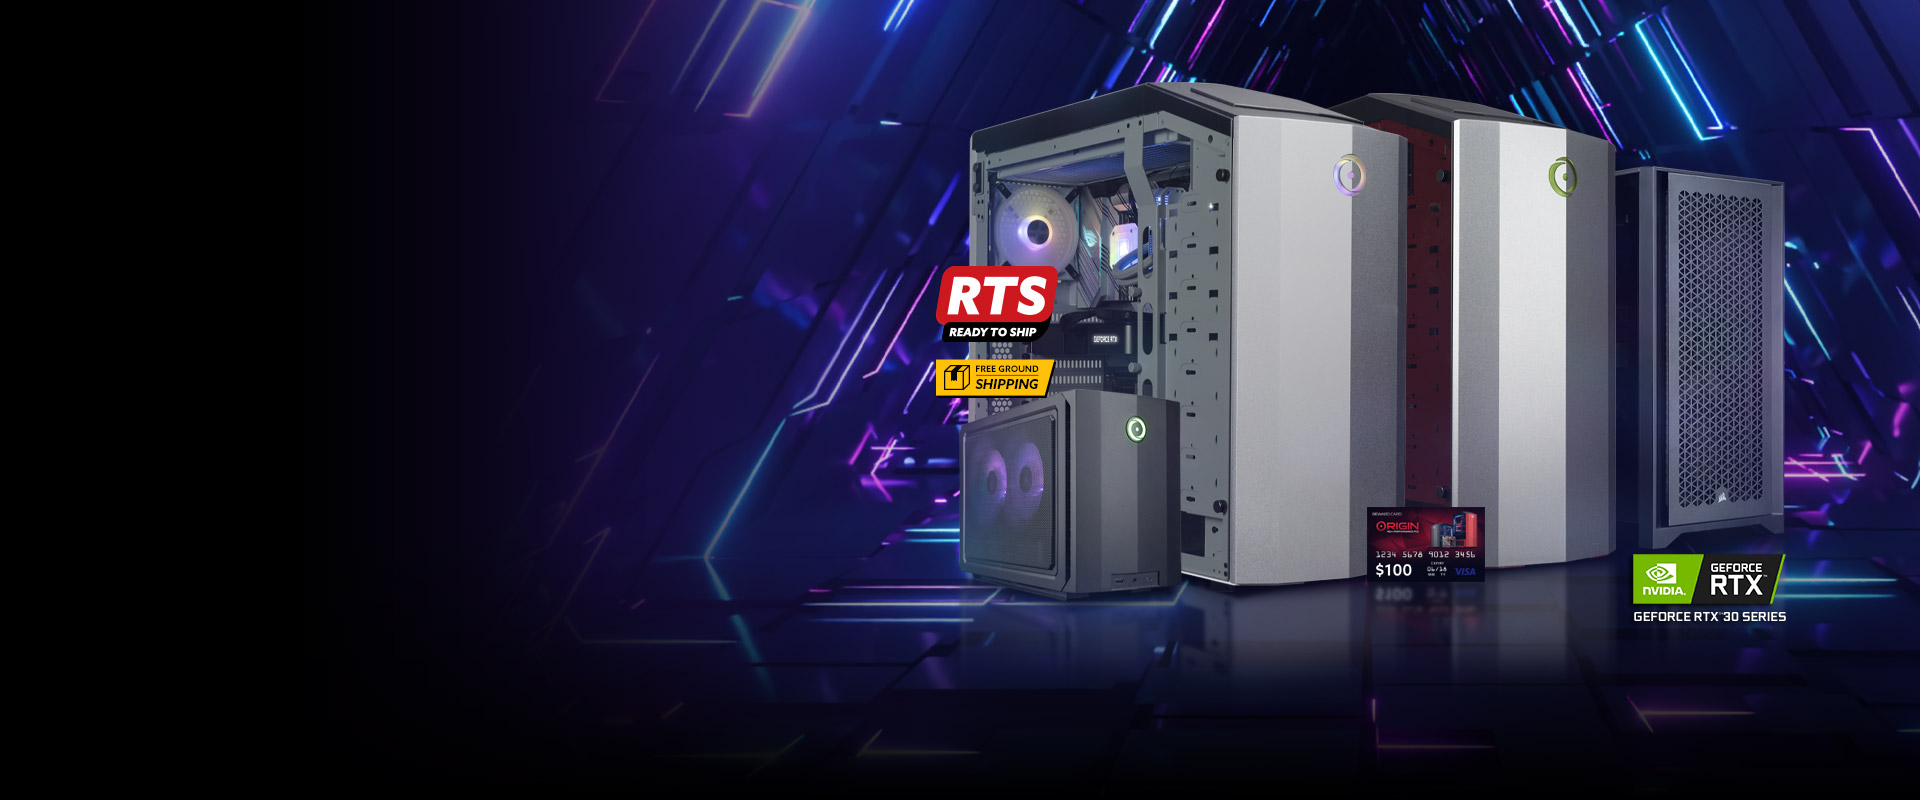 ORIGIN PC Ready-to-Ship (RTS) Systems